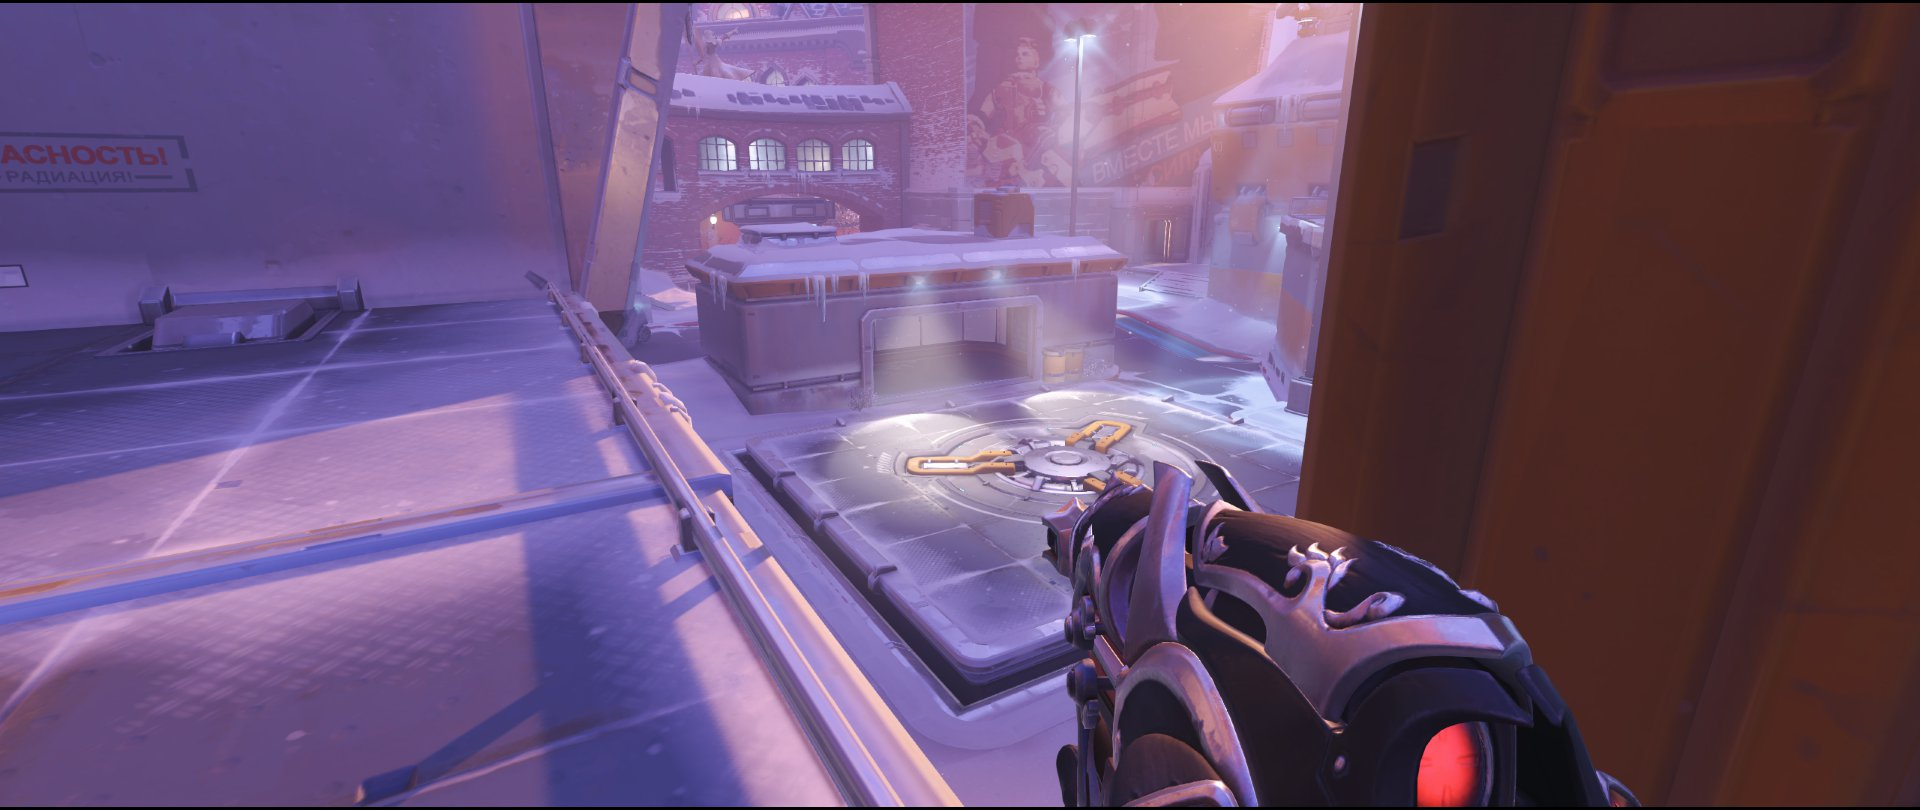 Ops high ground defense sniping spot Widowmaker Volskaya Industries Overwatch.jpg